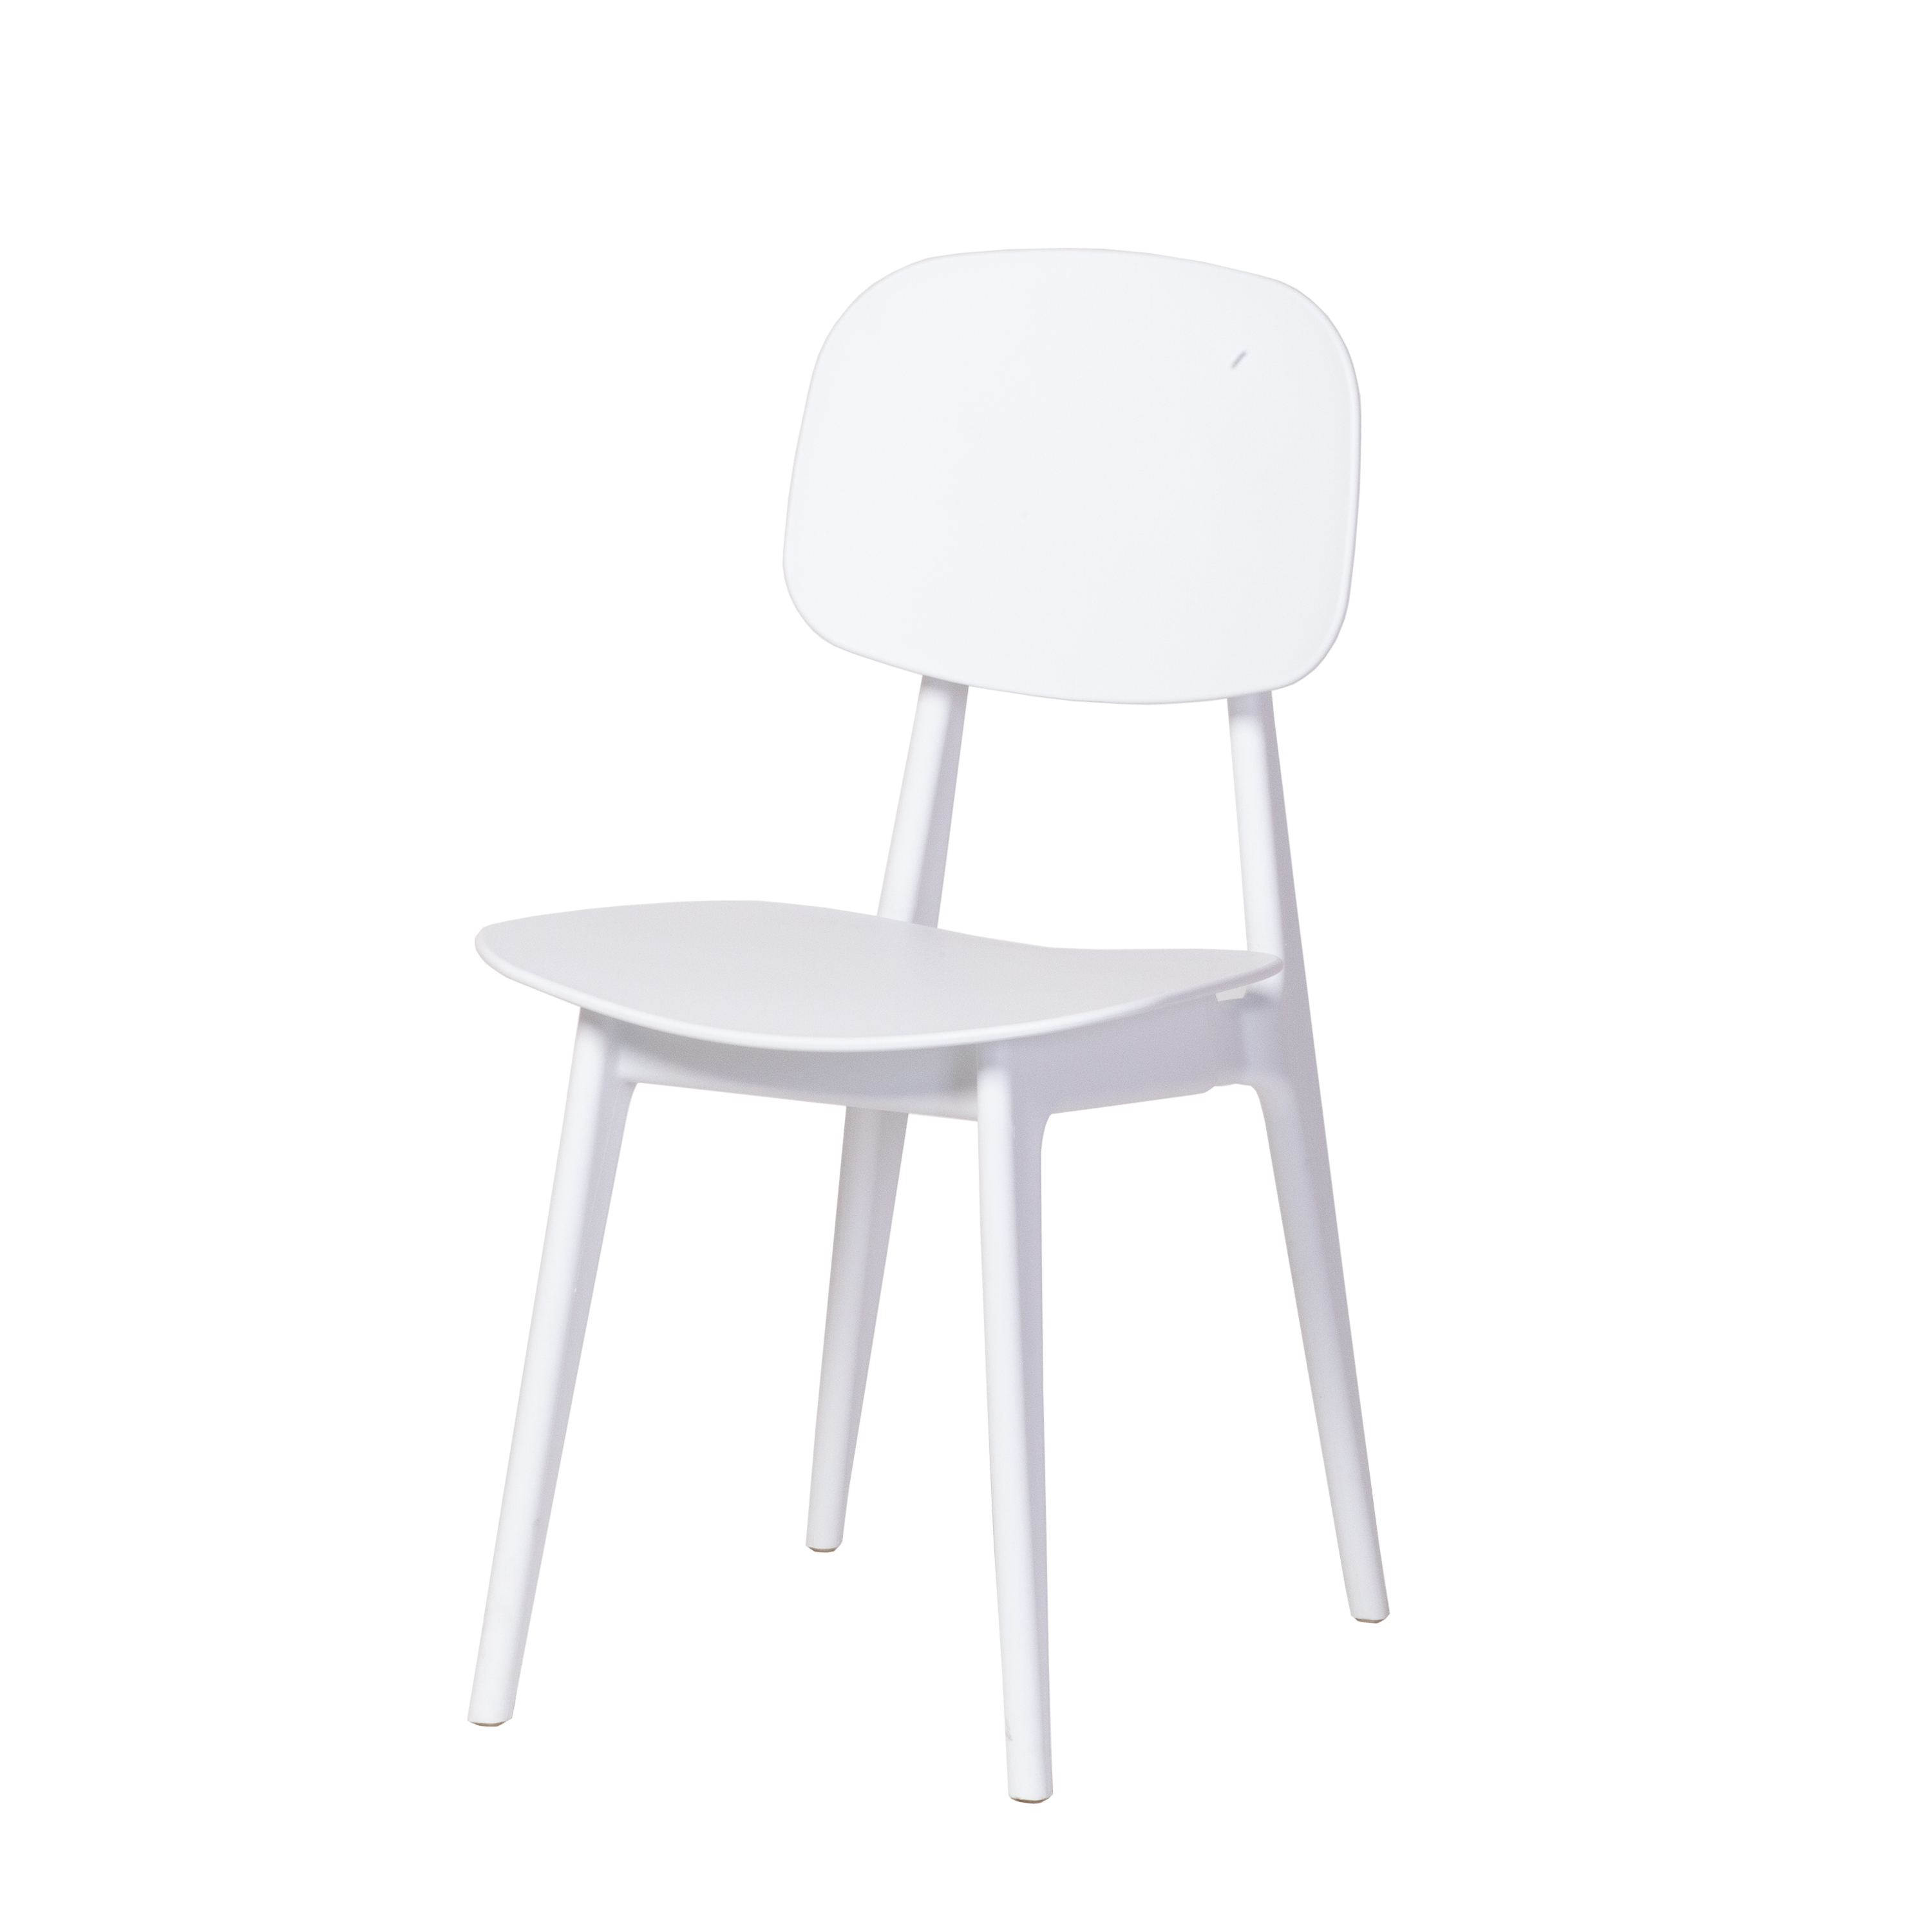 Cherry Dining Chair - White